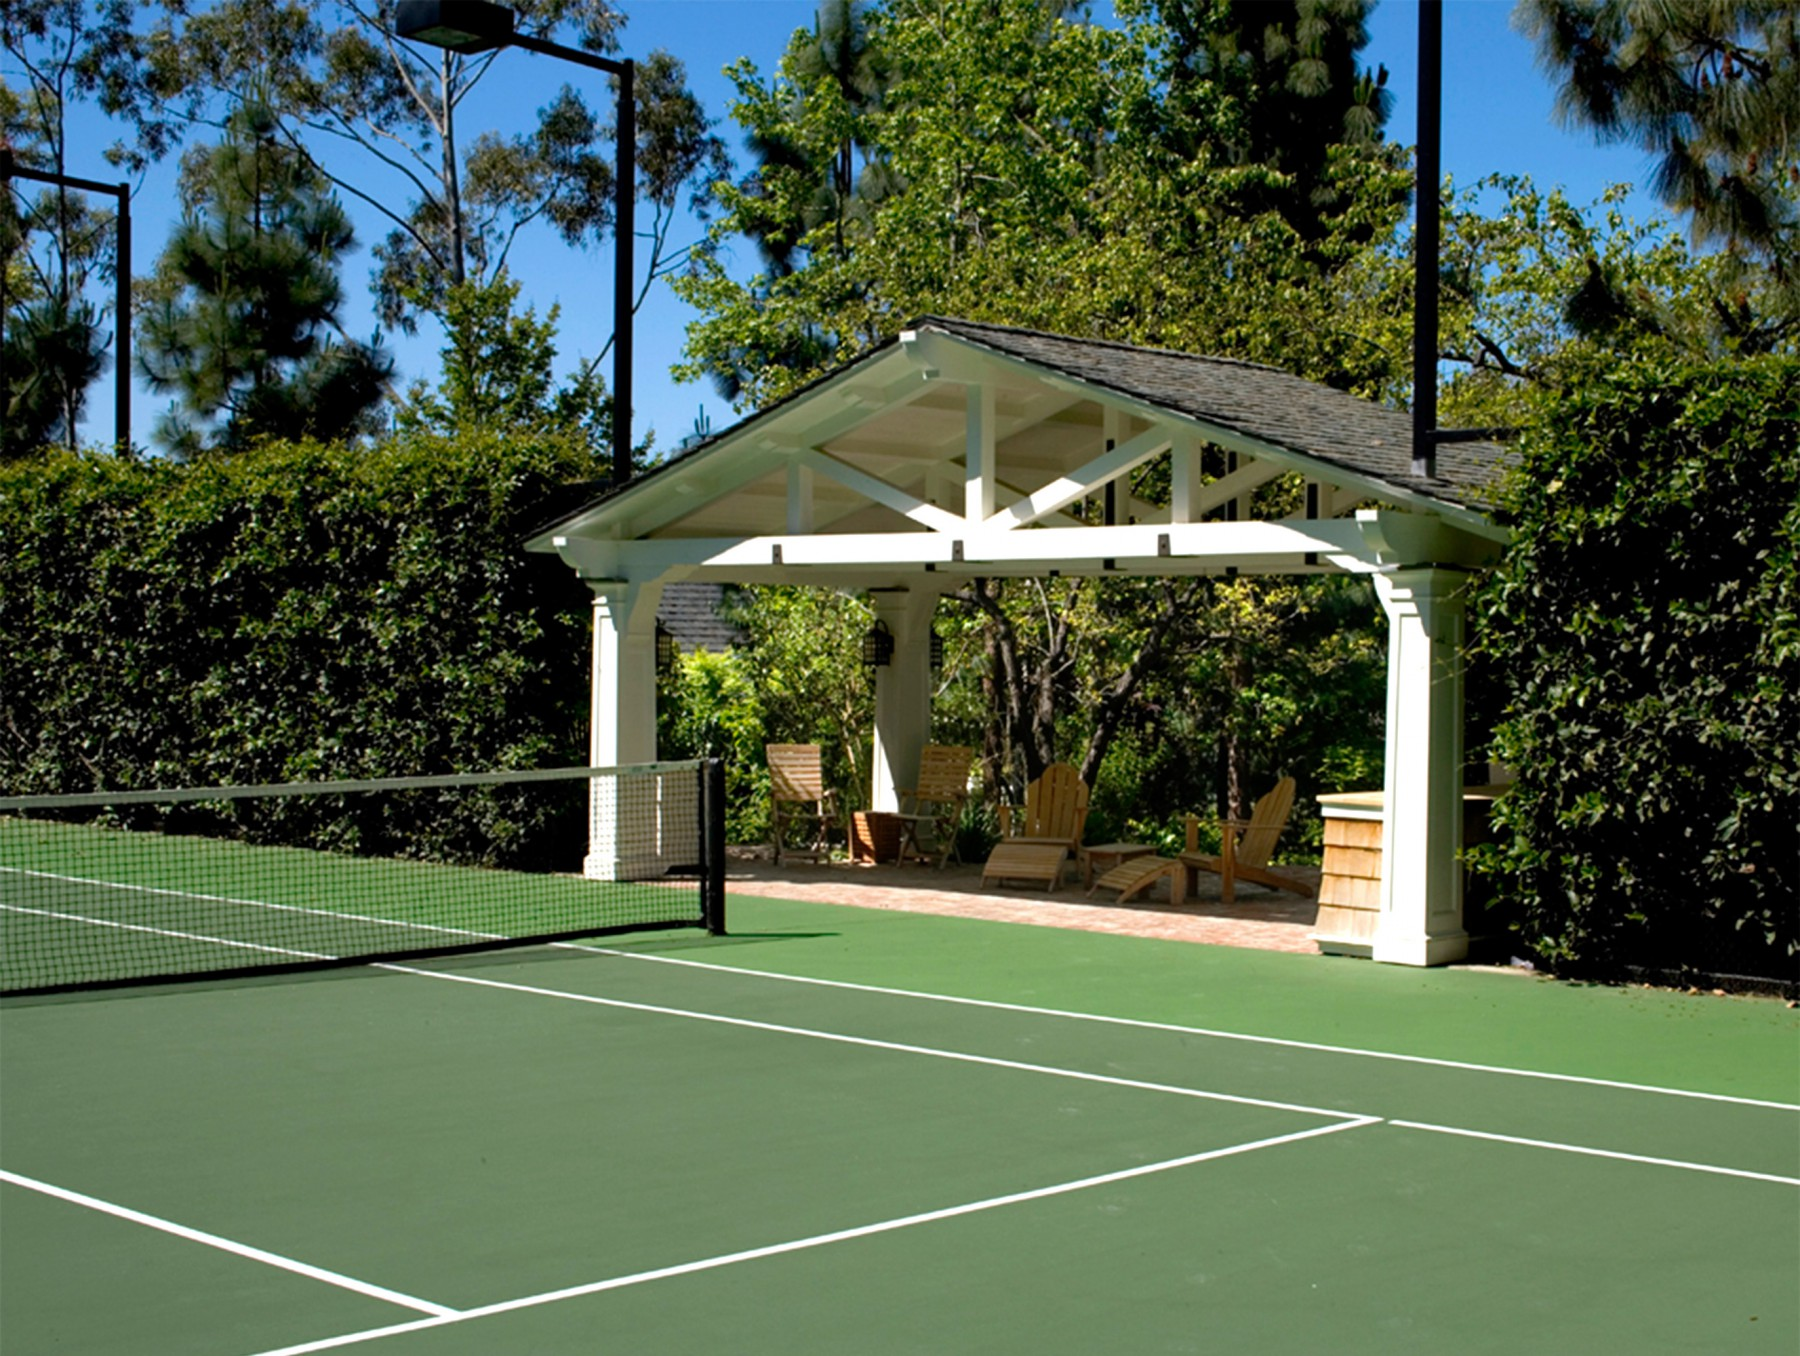 custom built pergola at tennis court